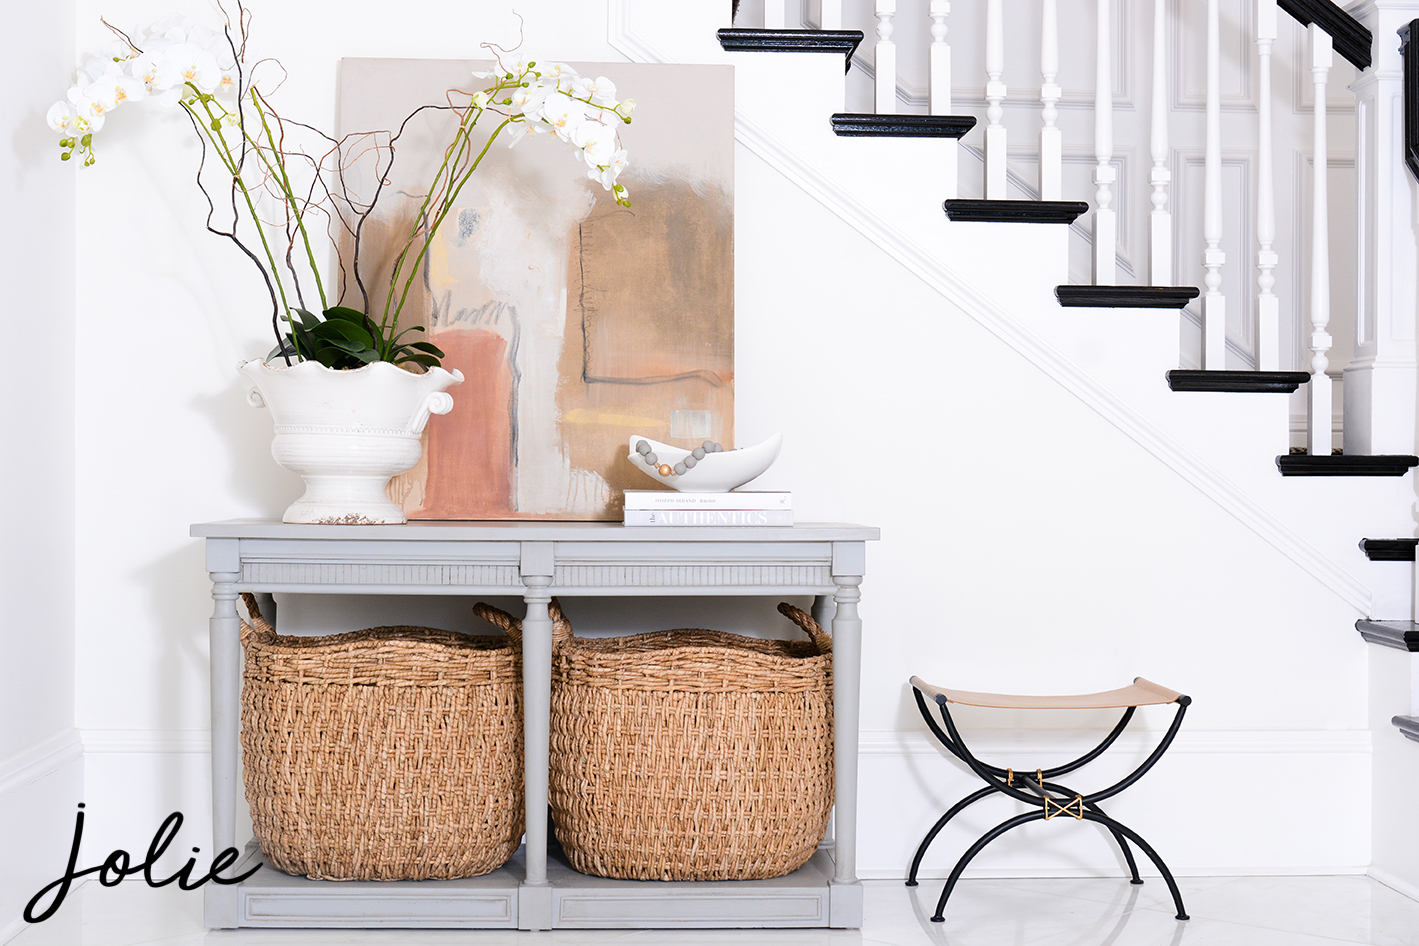 Make Life Beautiful. Achieve lots of different looks with Jolie Paint.  joliehome.com